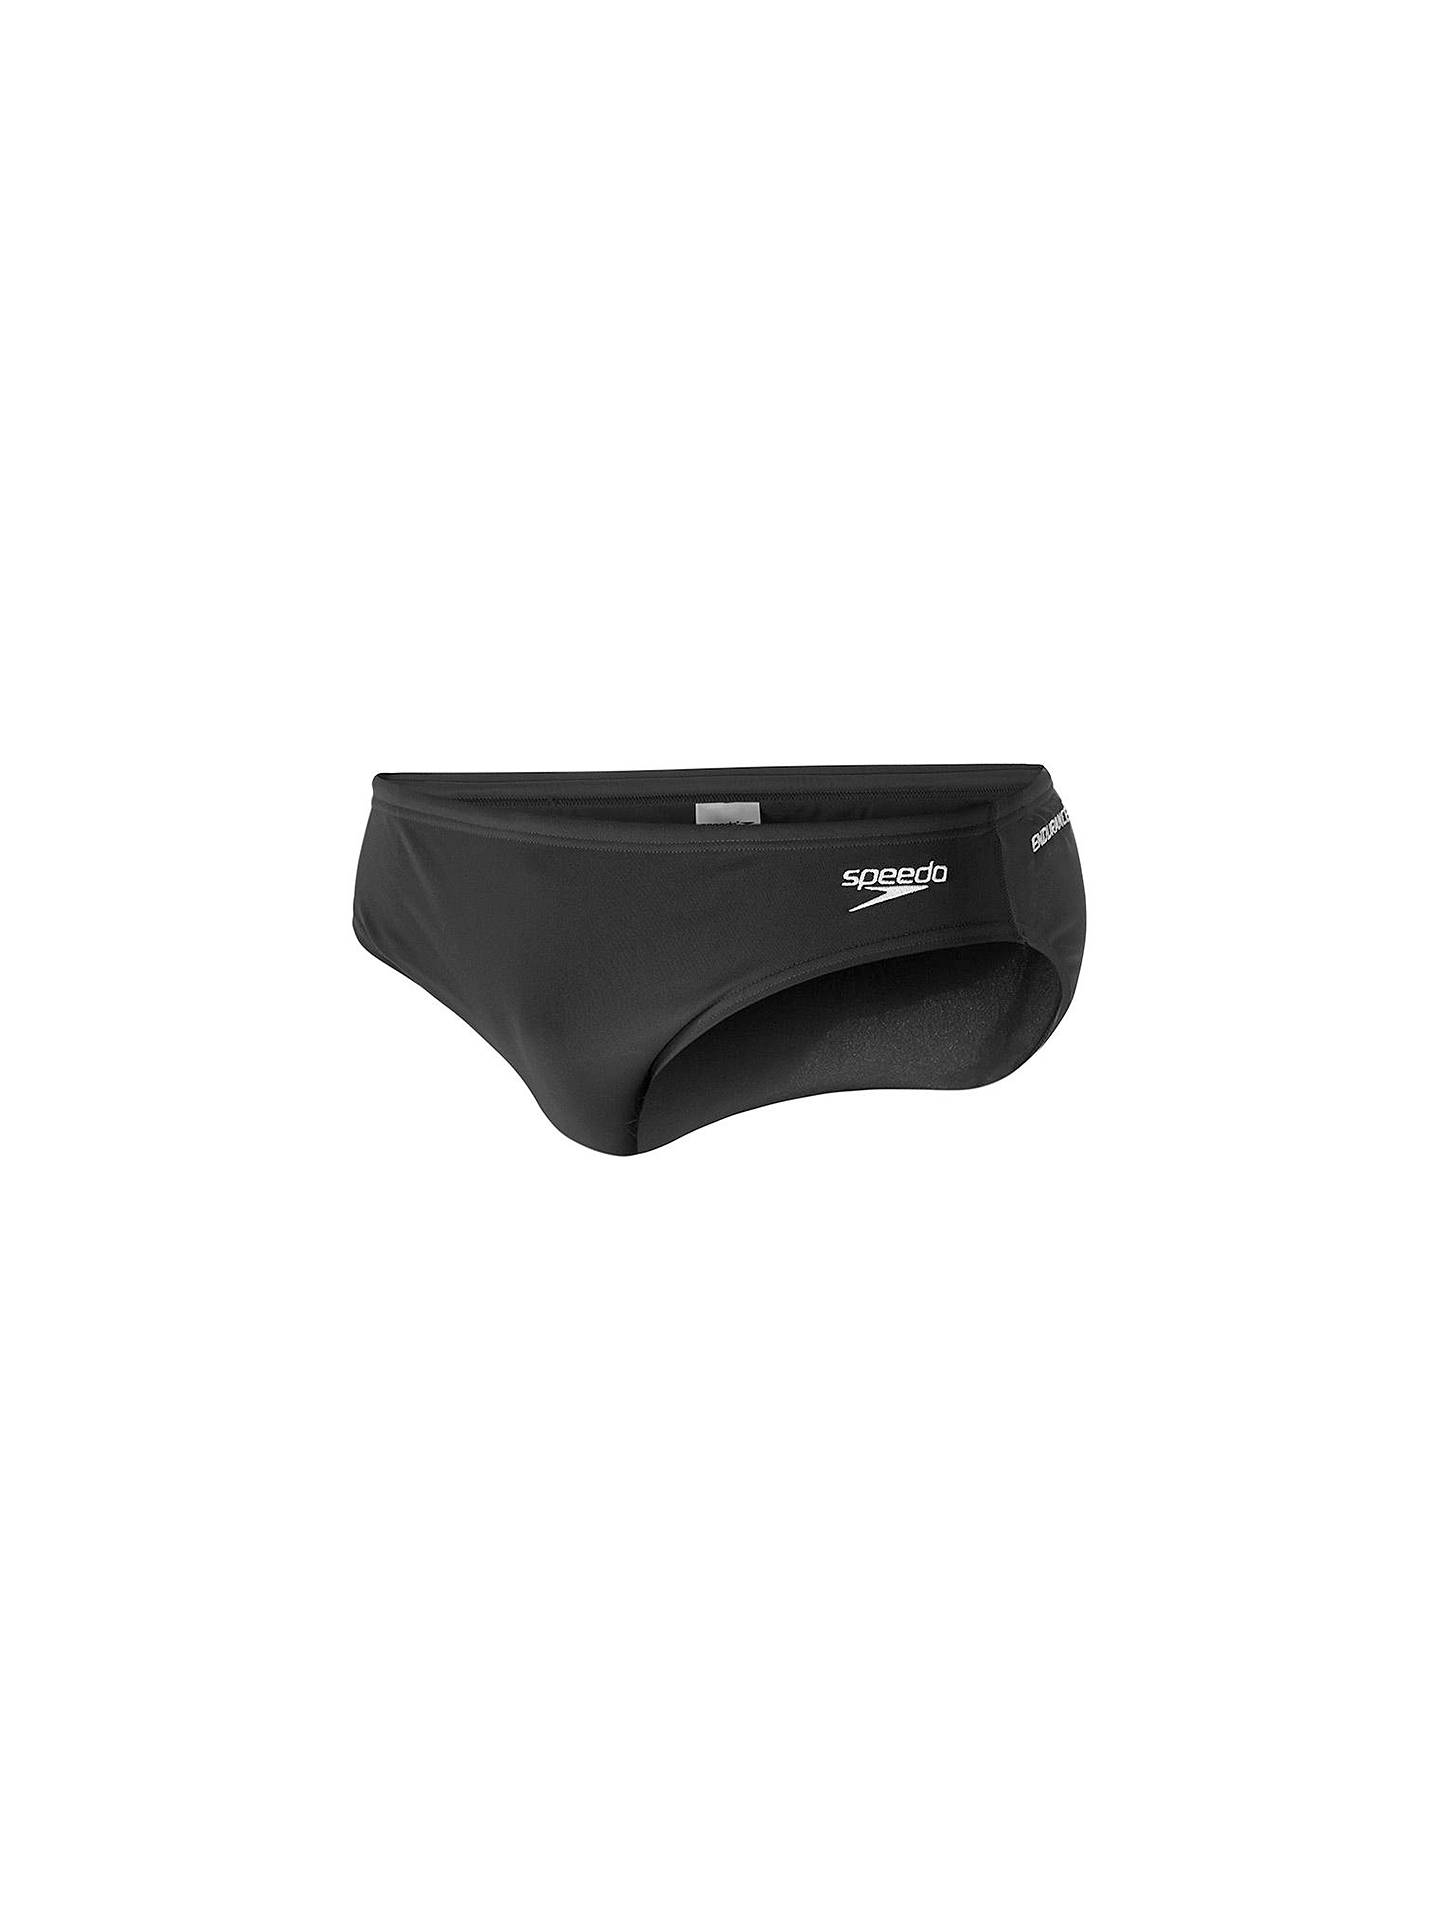 BuySpeedo Endurance+ 7cm Swim Briefs, Black, 32 Online at johnlewis.com